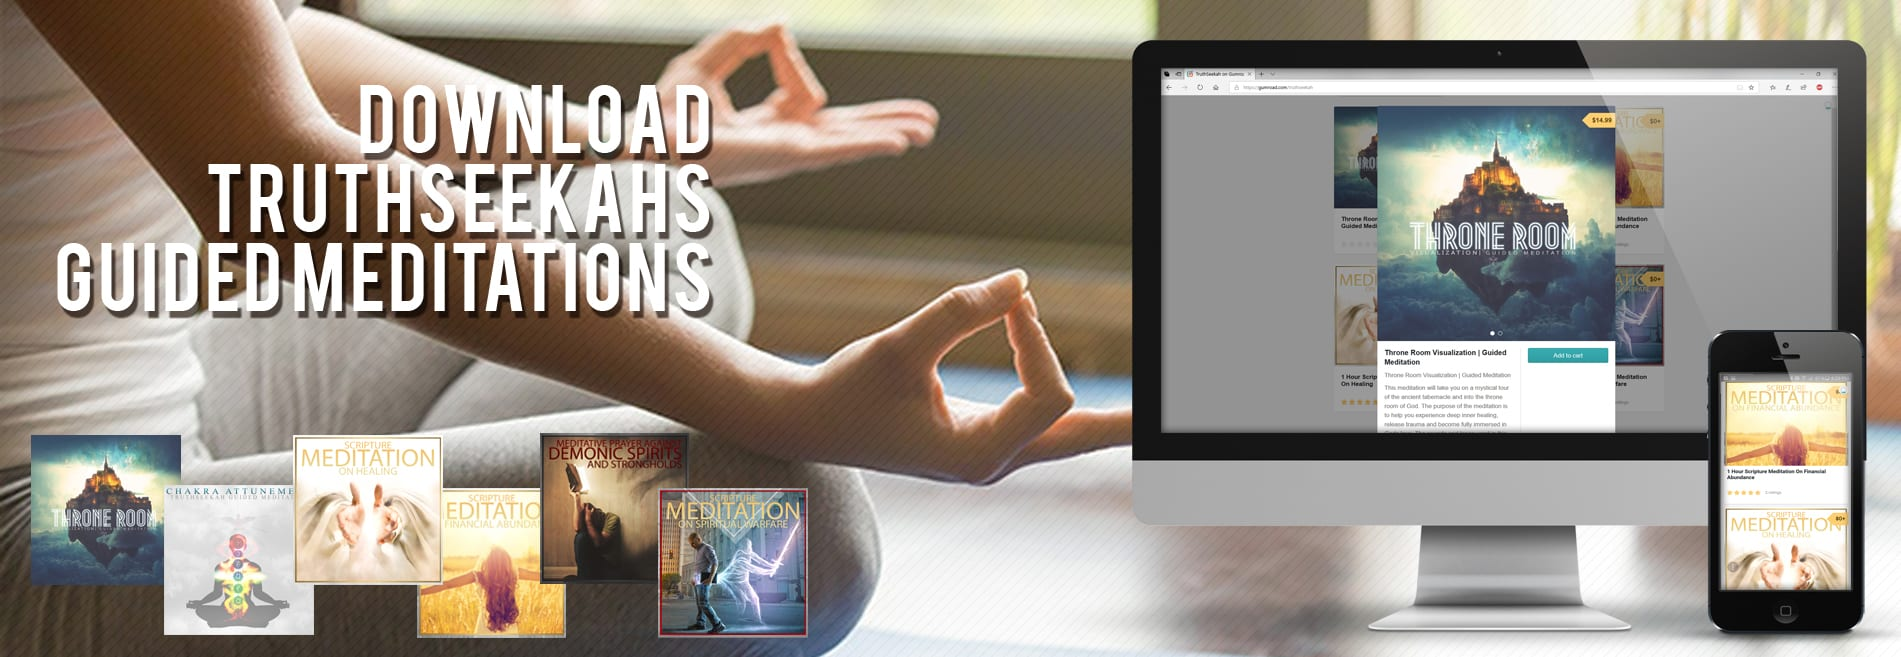 5 Powerful Interactive Guided Meditations